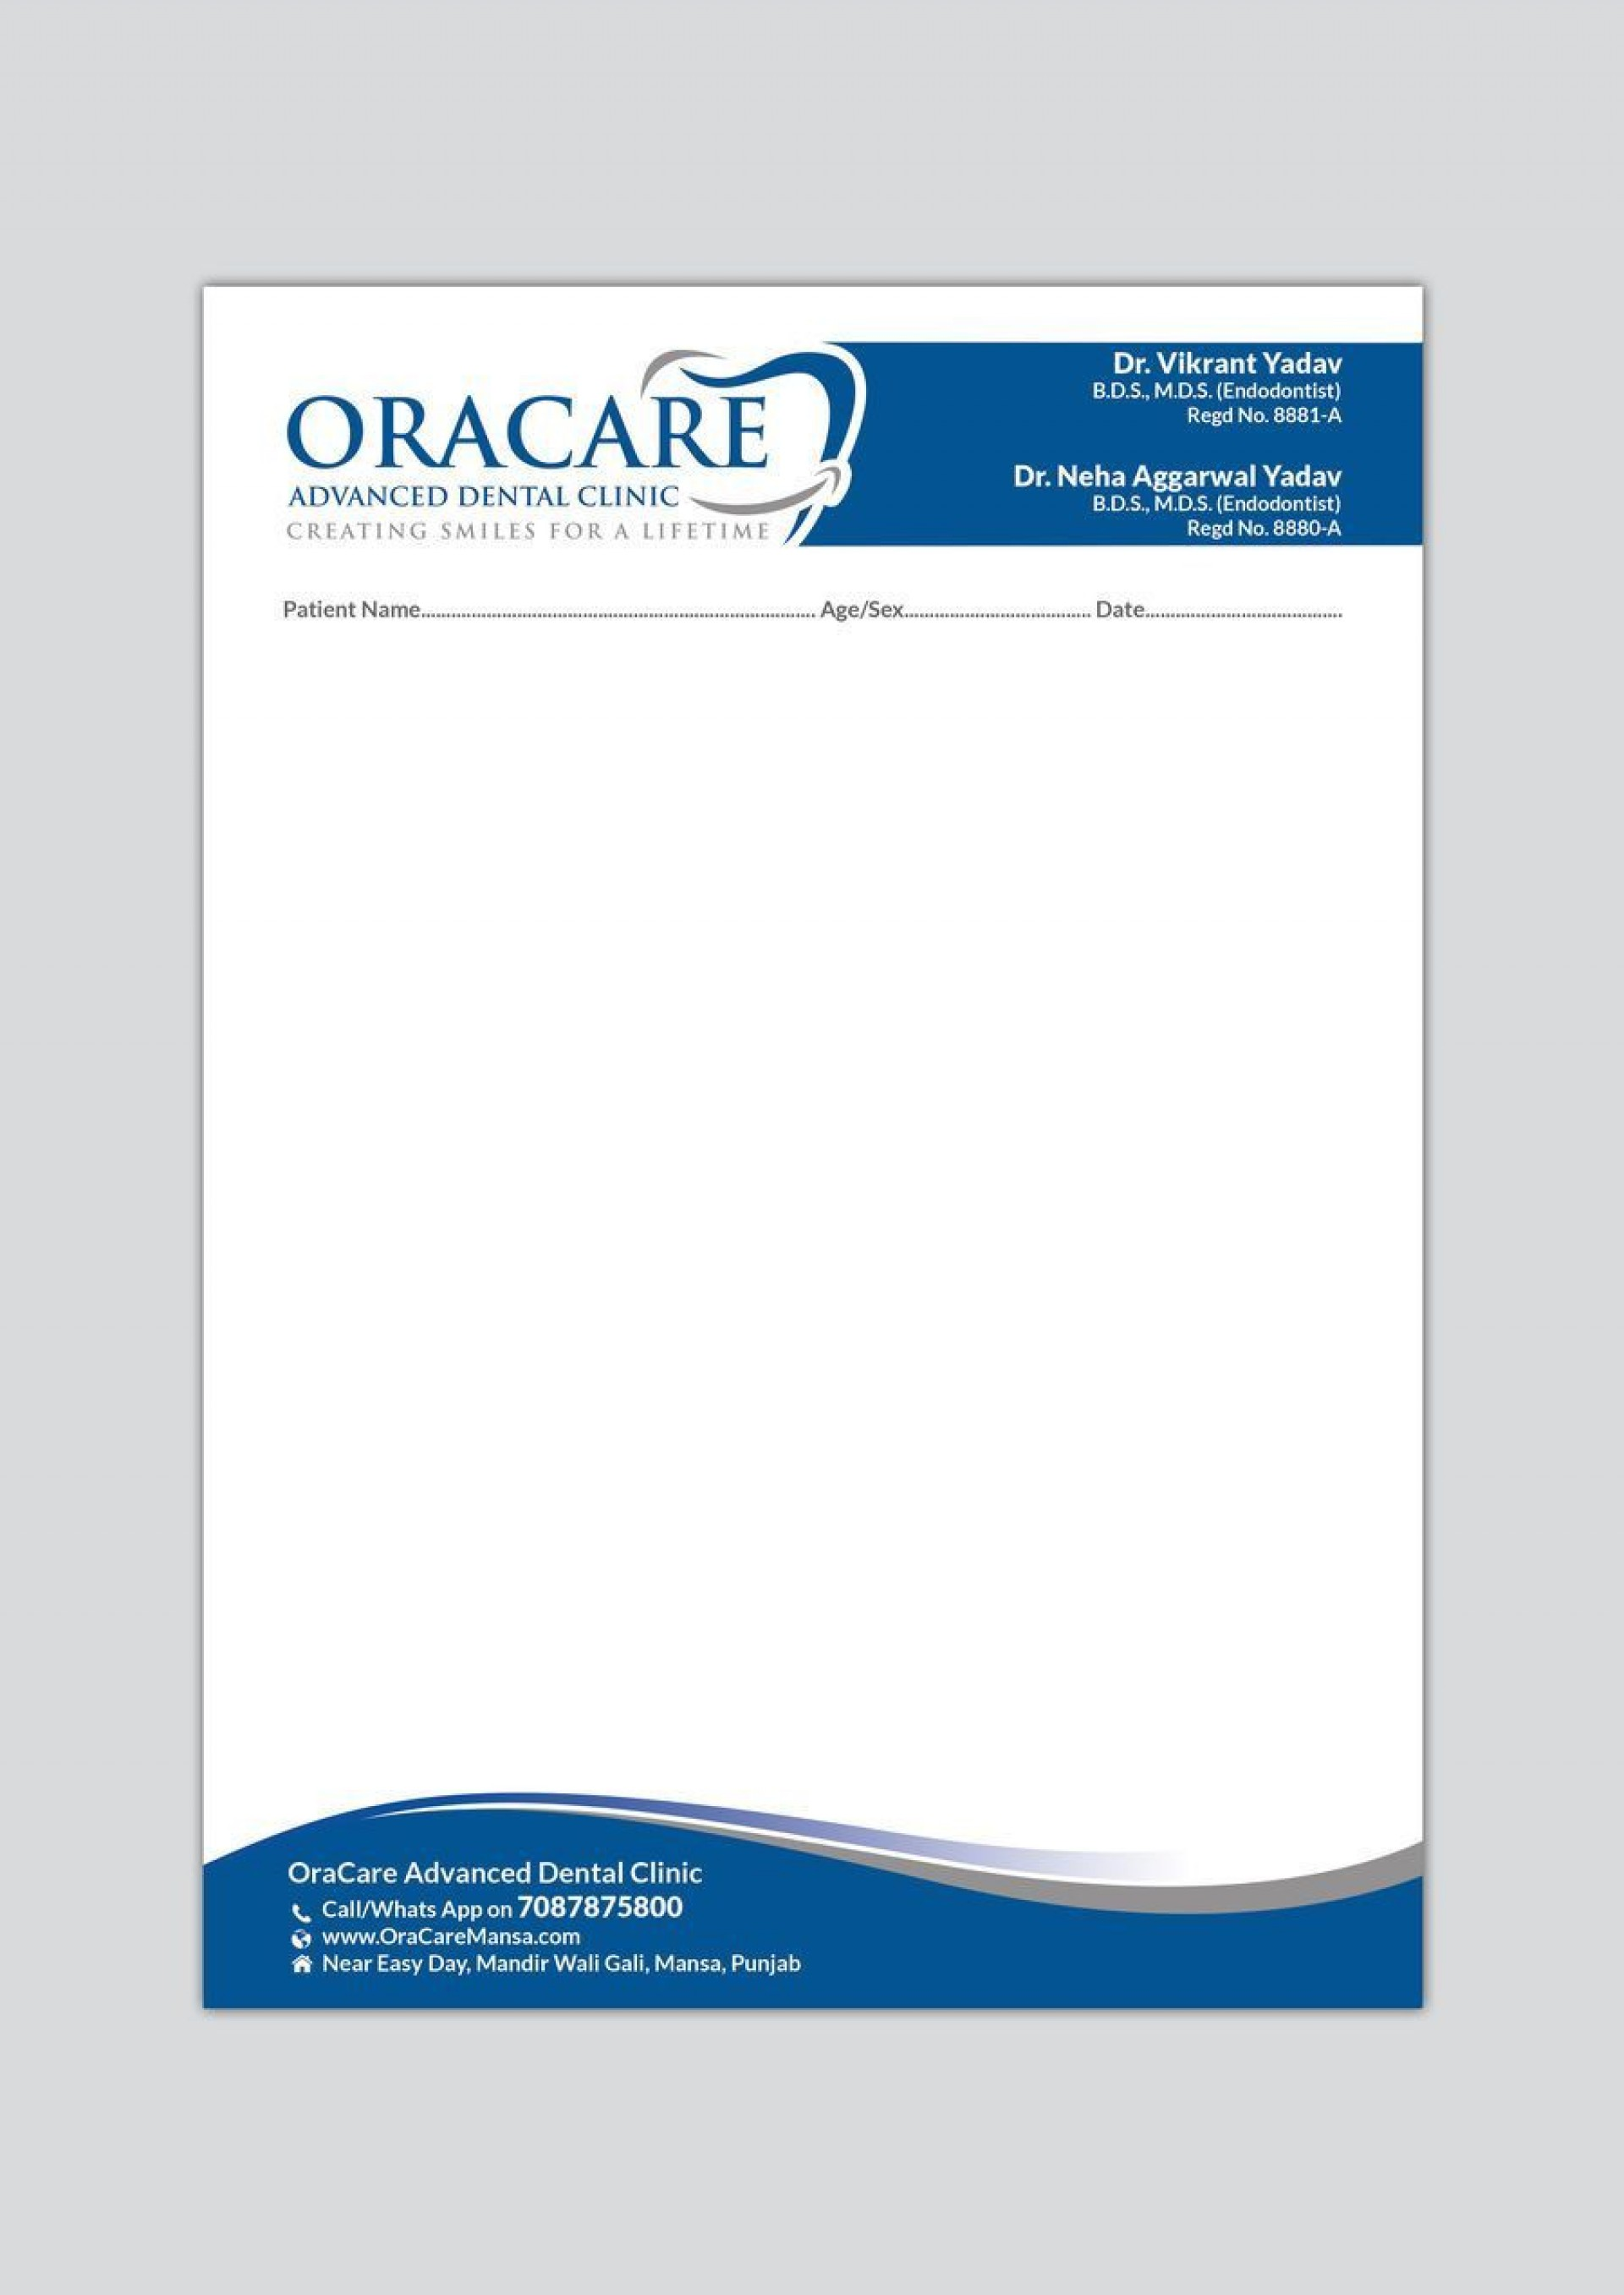 000 Remarkable Doctor Letterhead Format In Word Free Download Inspiration  Design1920